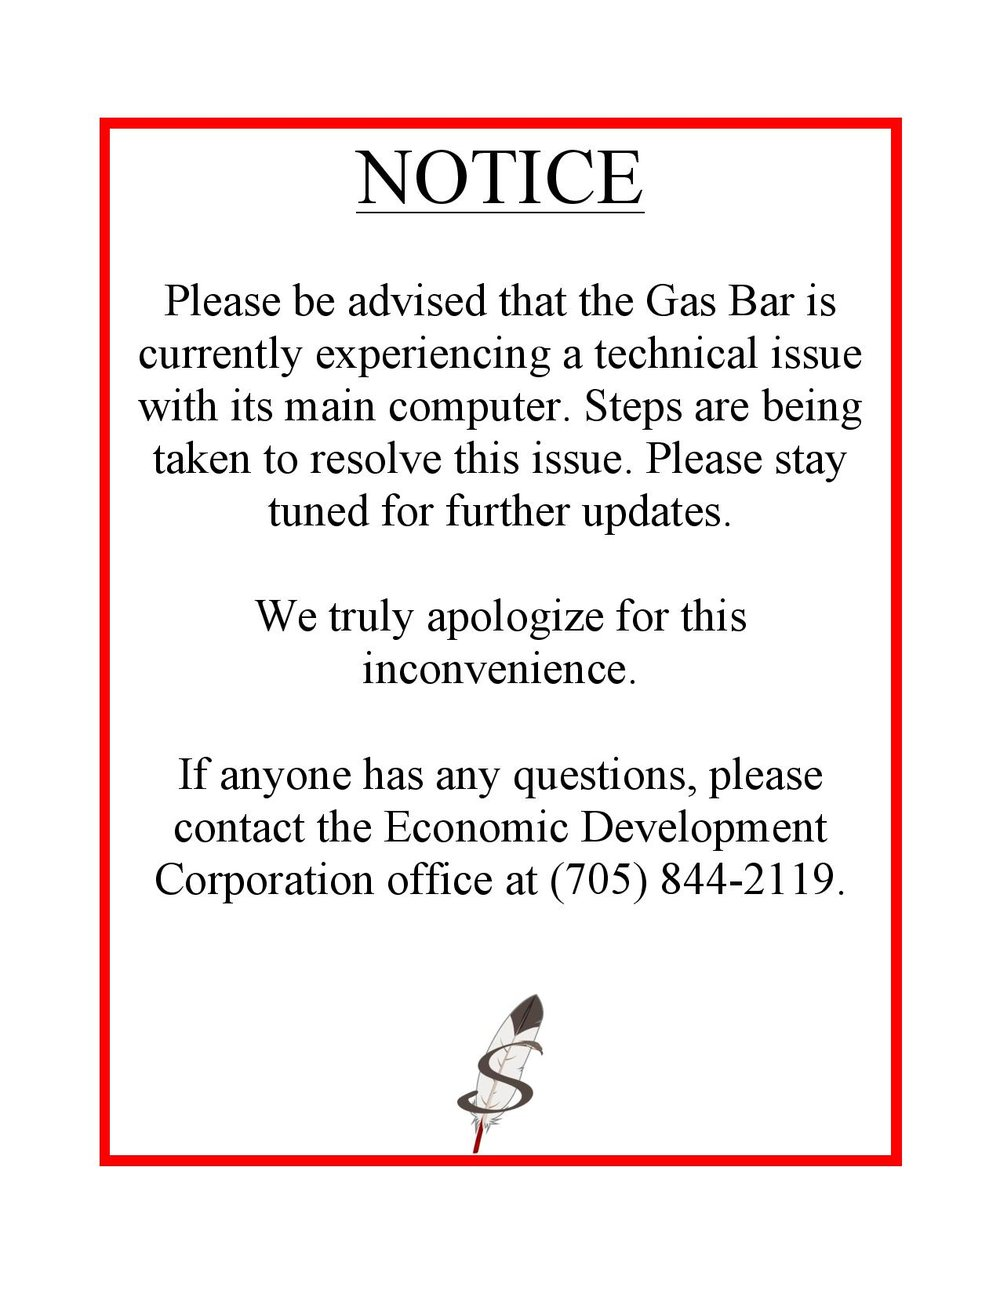 NOTICE Tech Issue-page-001.jpg